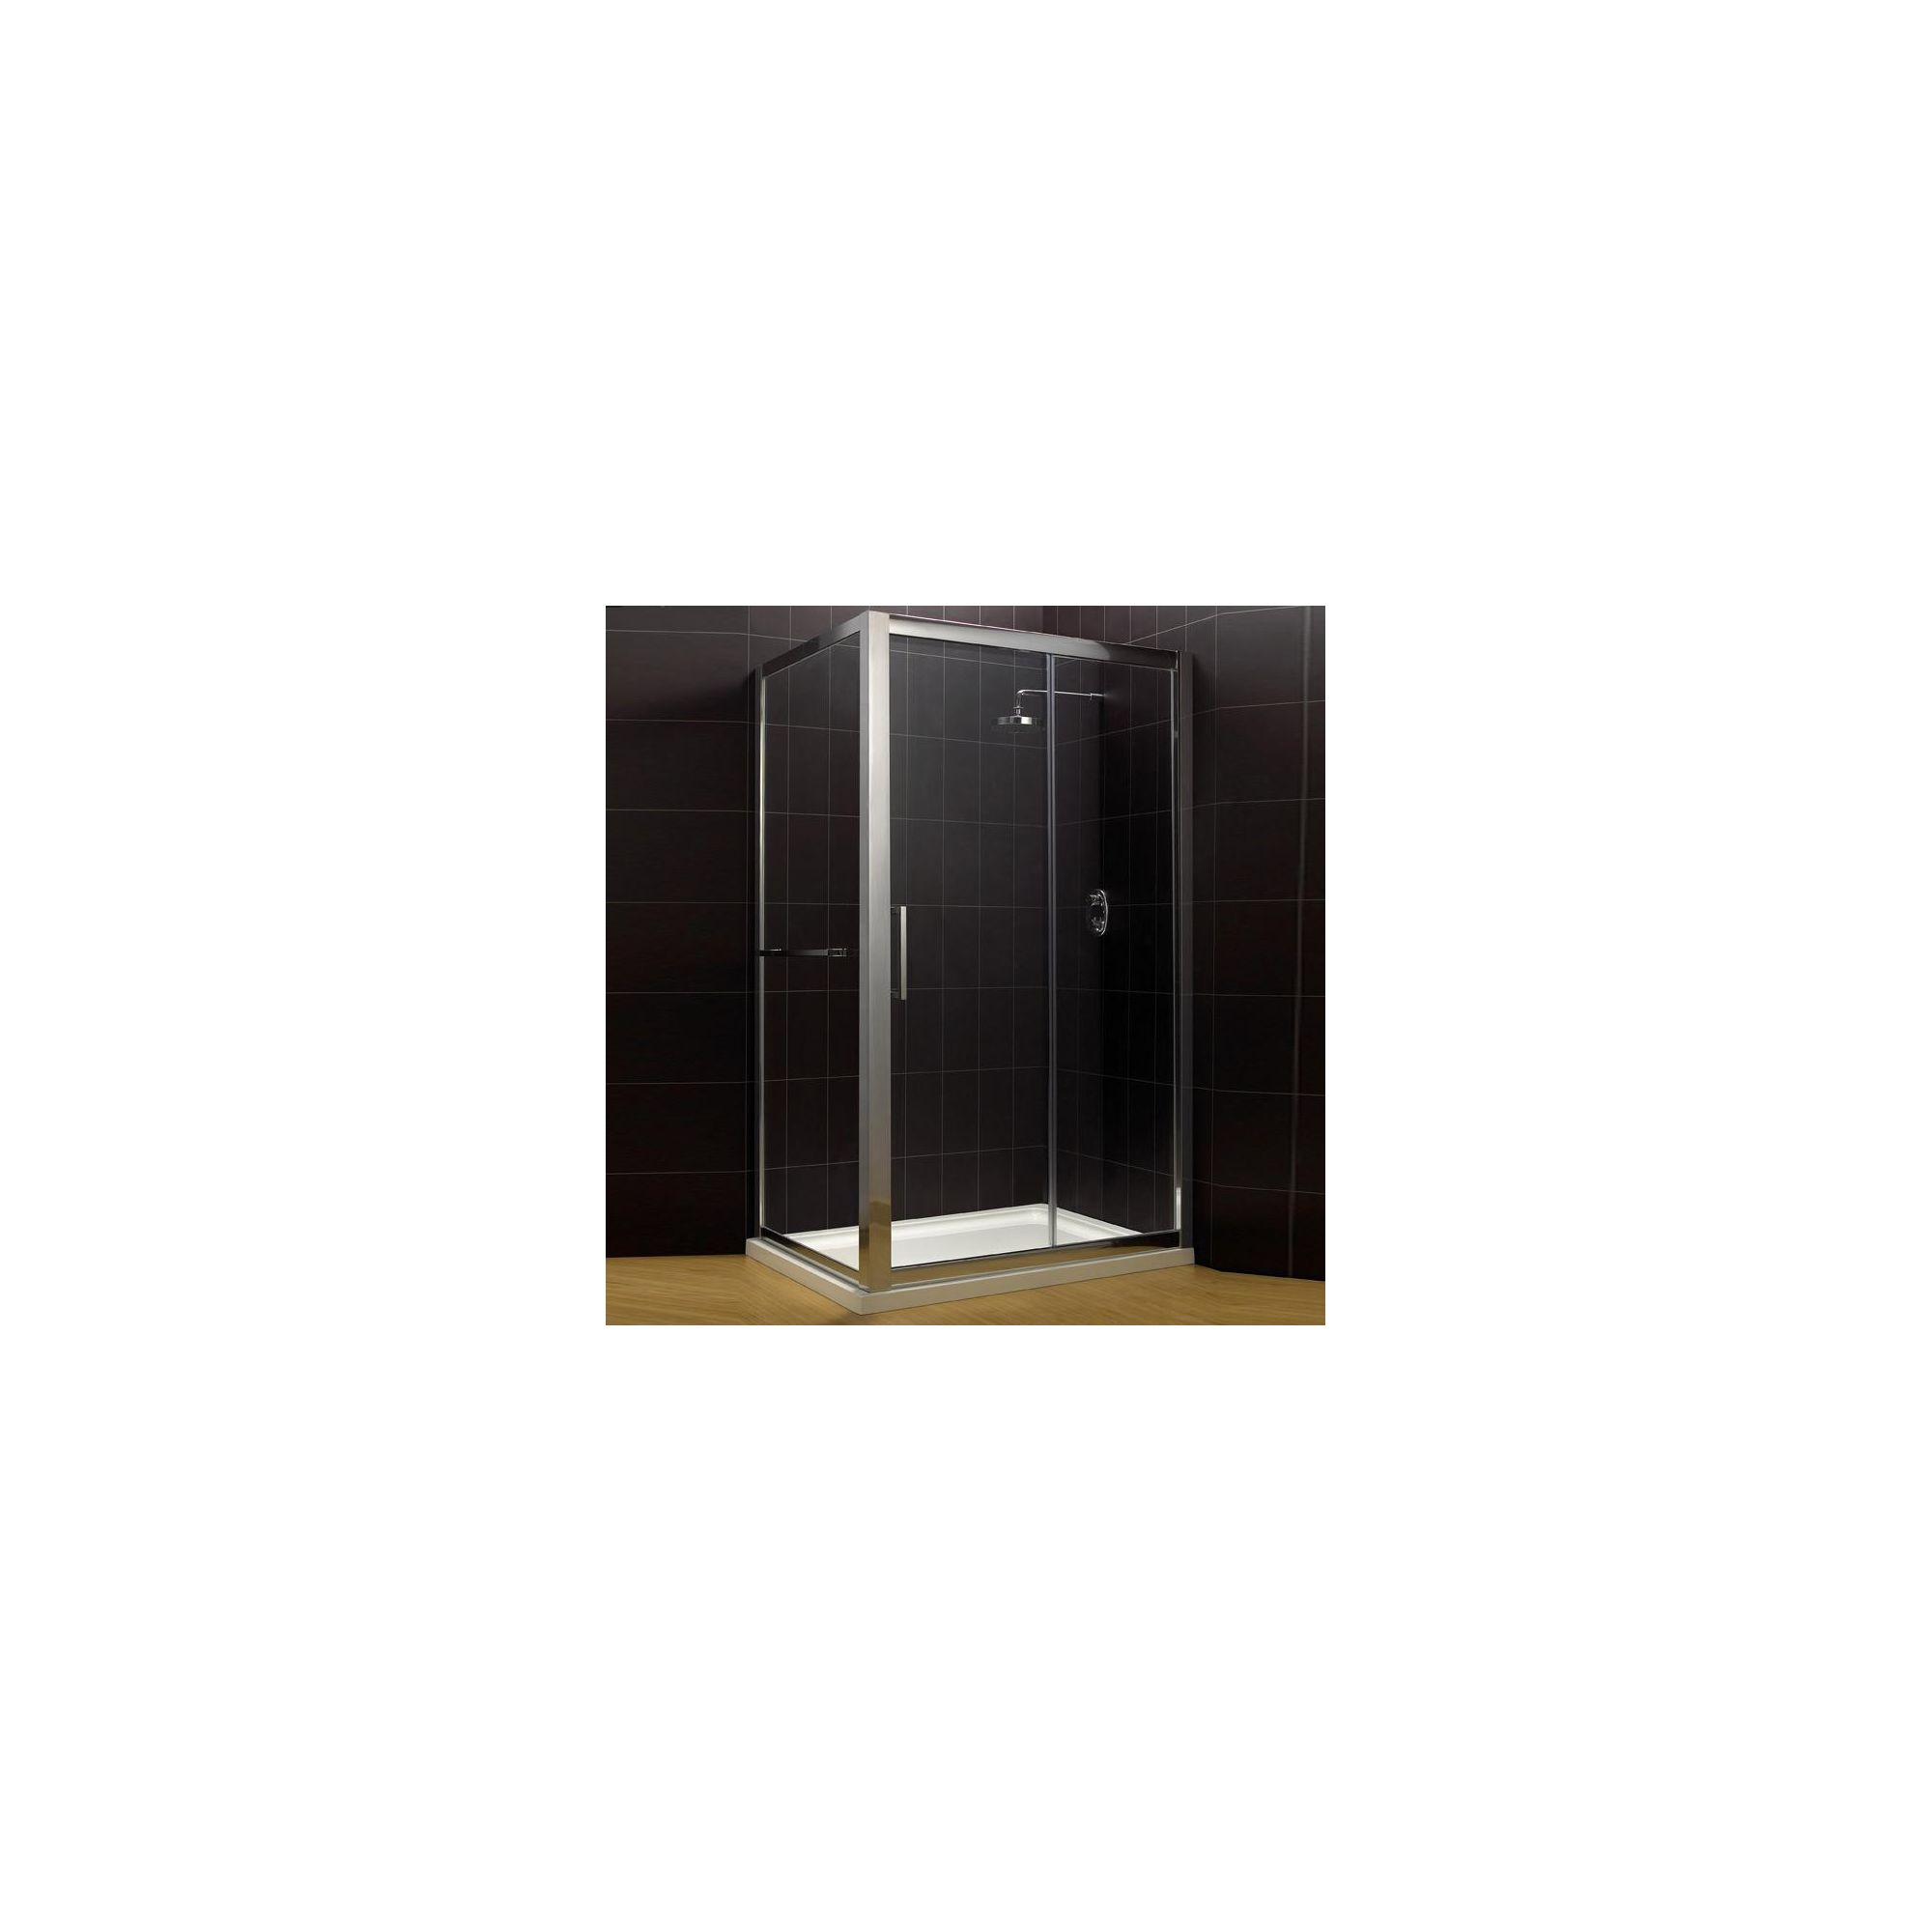 Duchy Supreme Silver Sliding Door Shower Enclosure, 1400mm x 760mm, Standard Tray, 8mm Glass at Tesco Direct